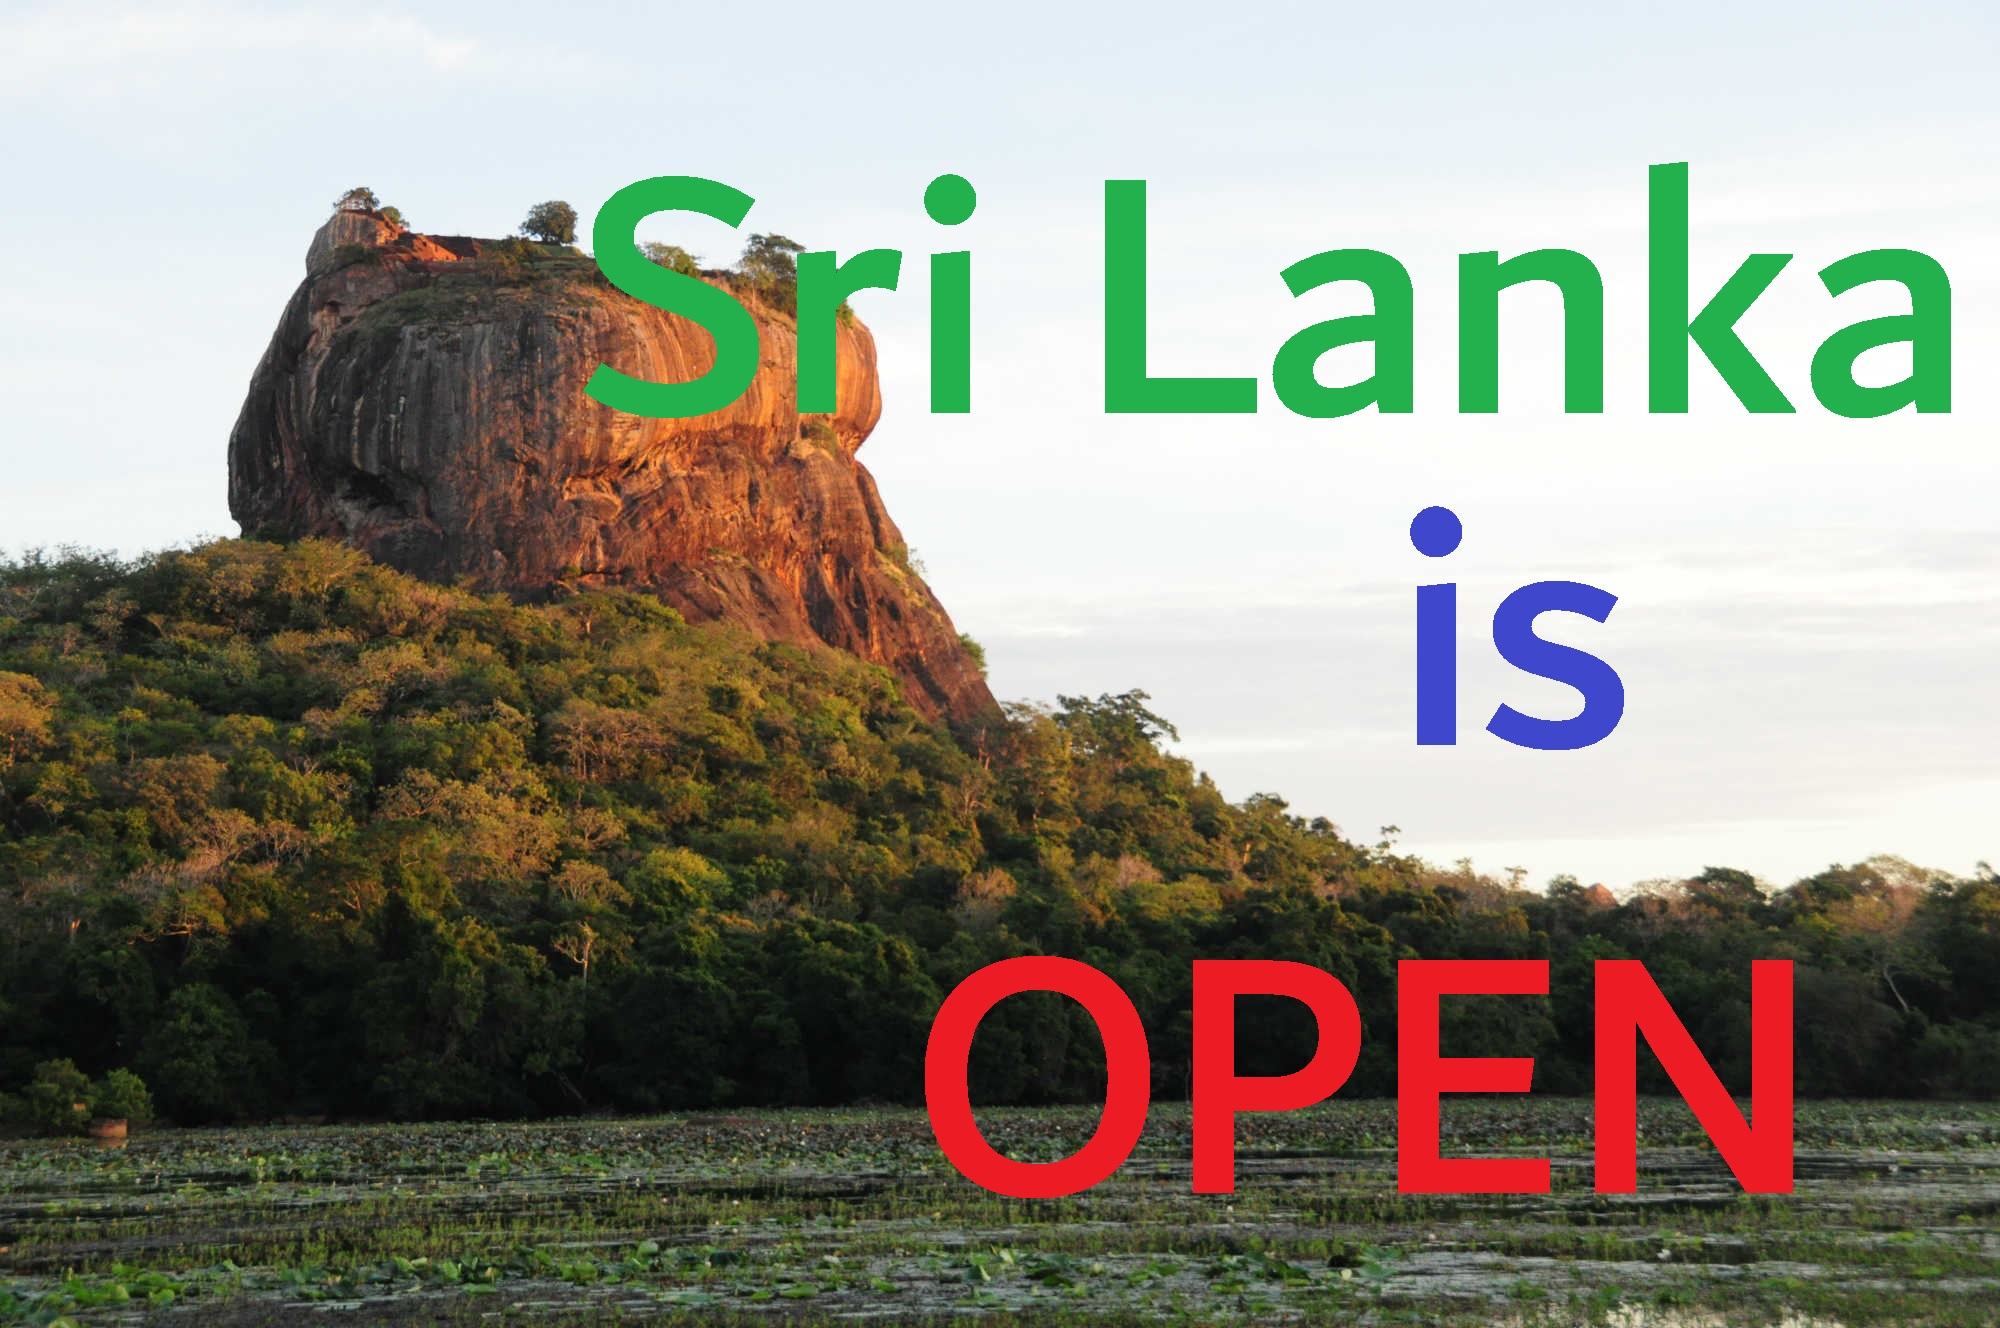 Sri Lanka is open!